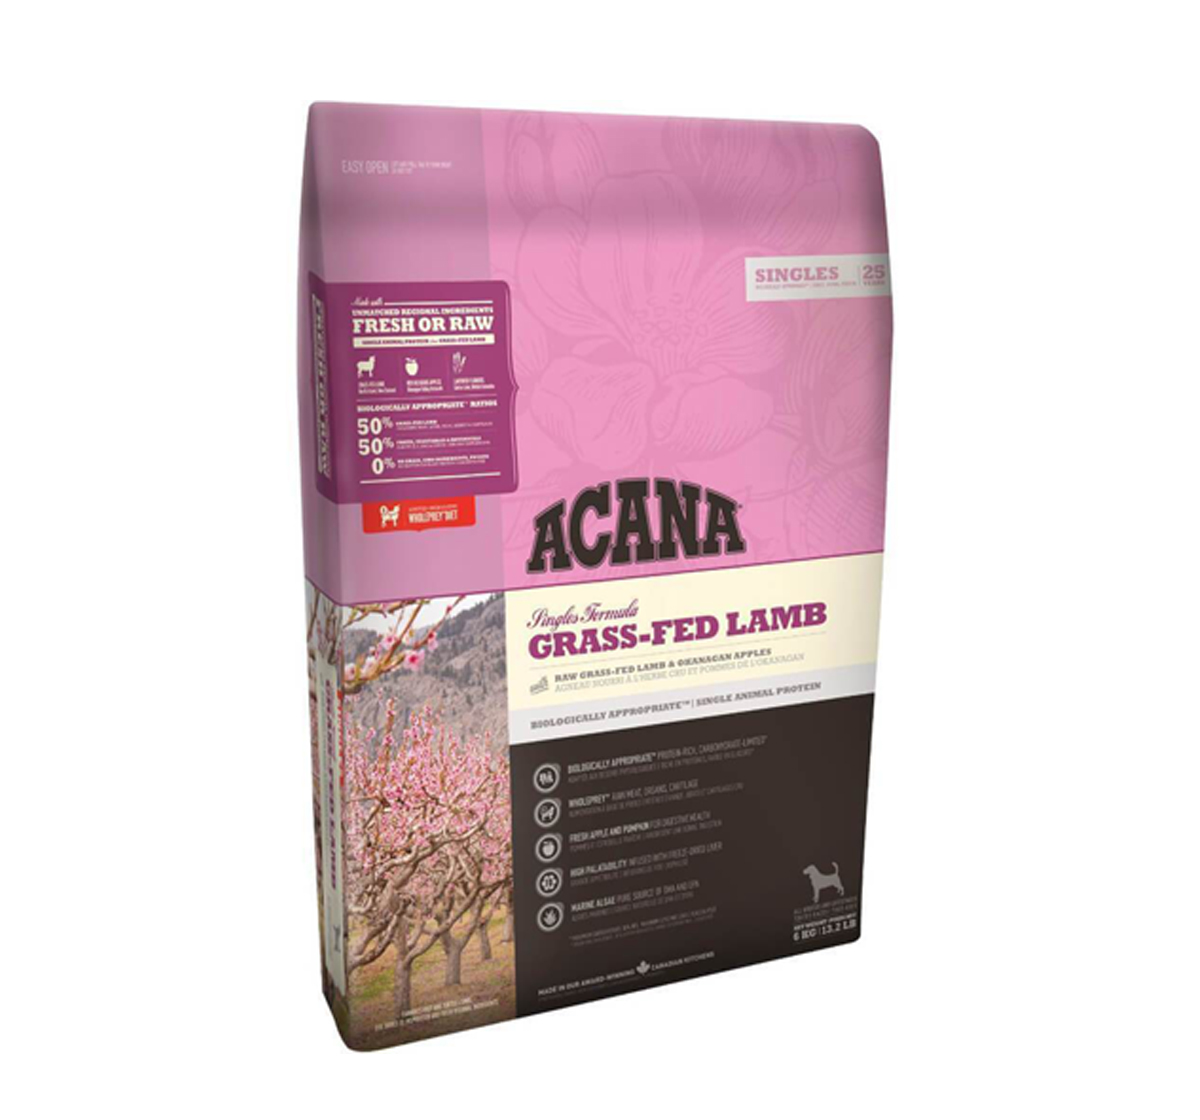 Acana Grass-Fed Lamb Dog Food - 6 Kg